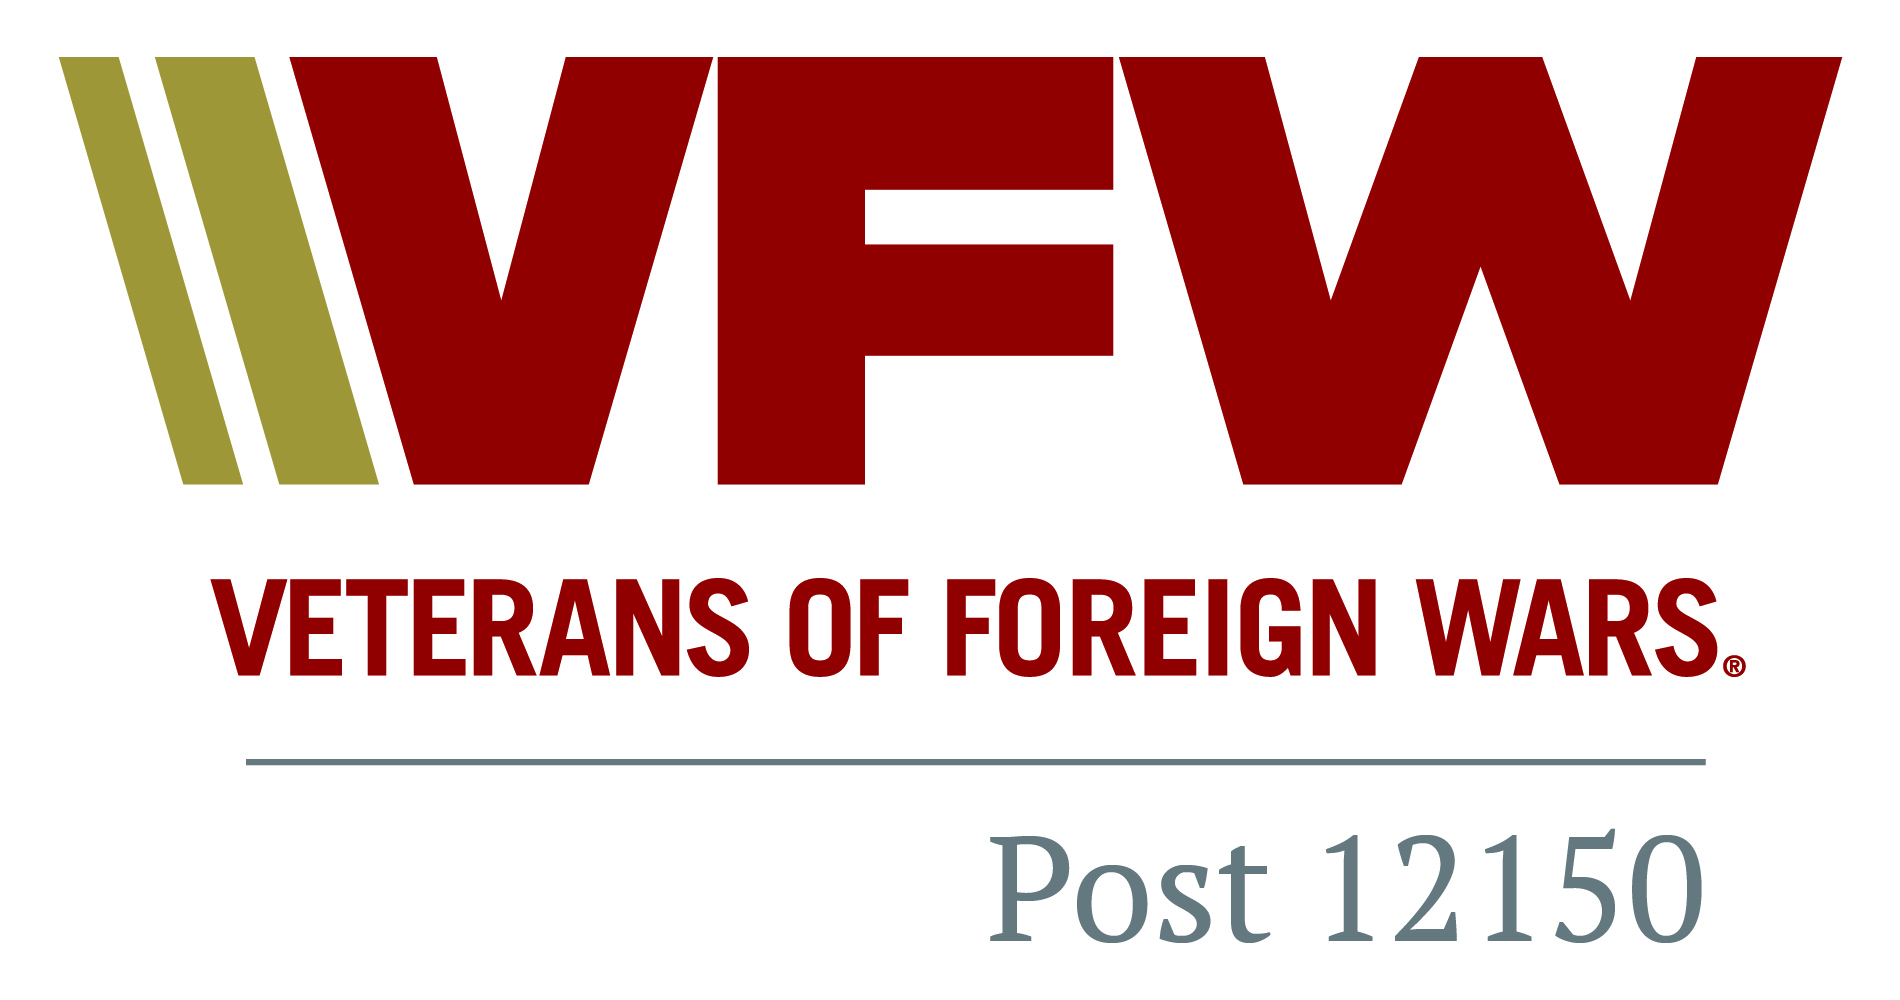 VFW New Haven Post 12150 New Logo